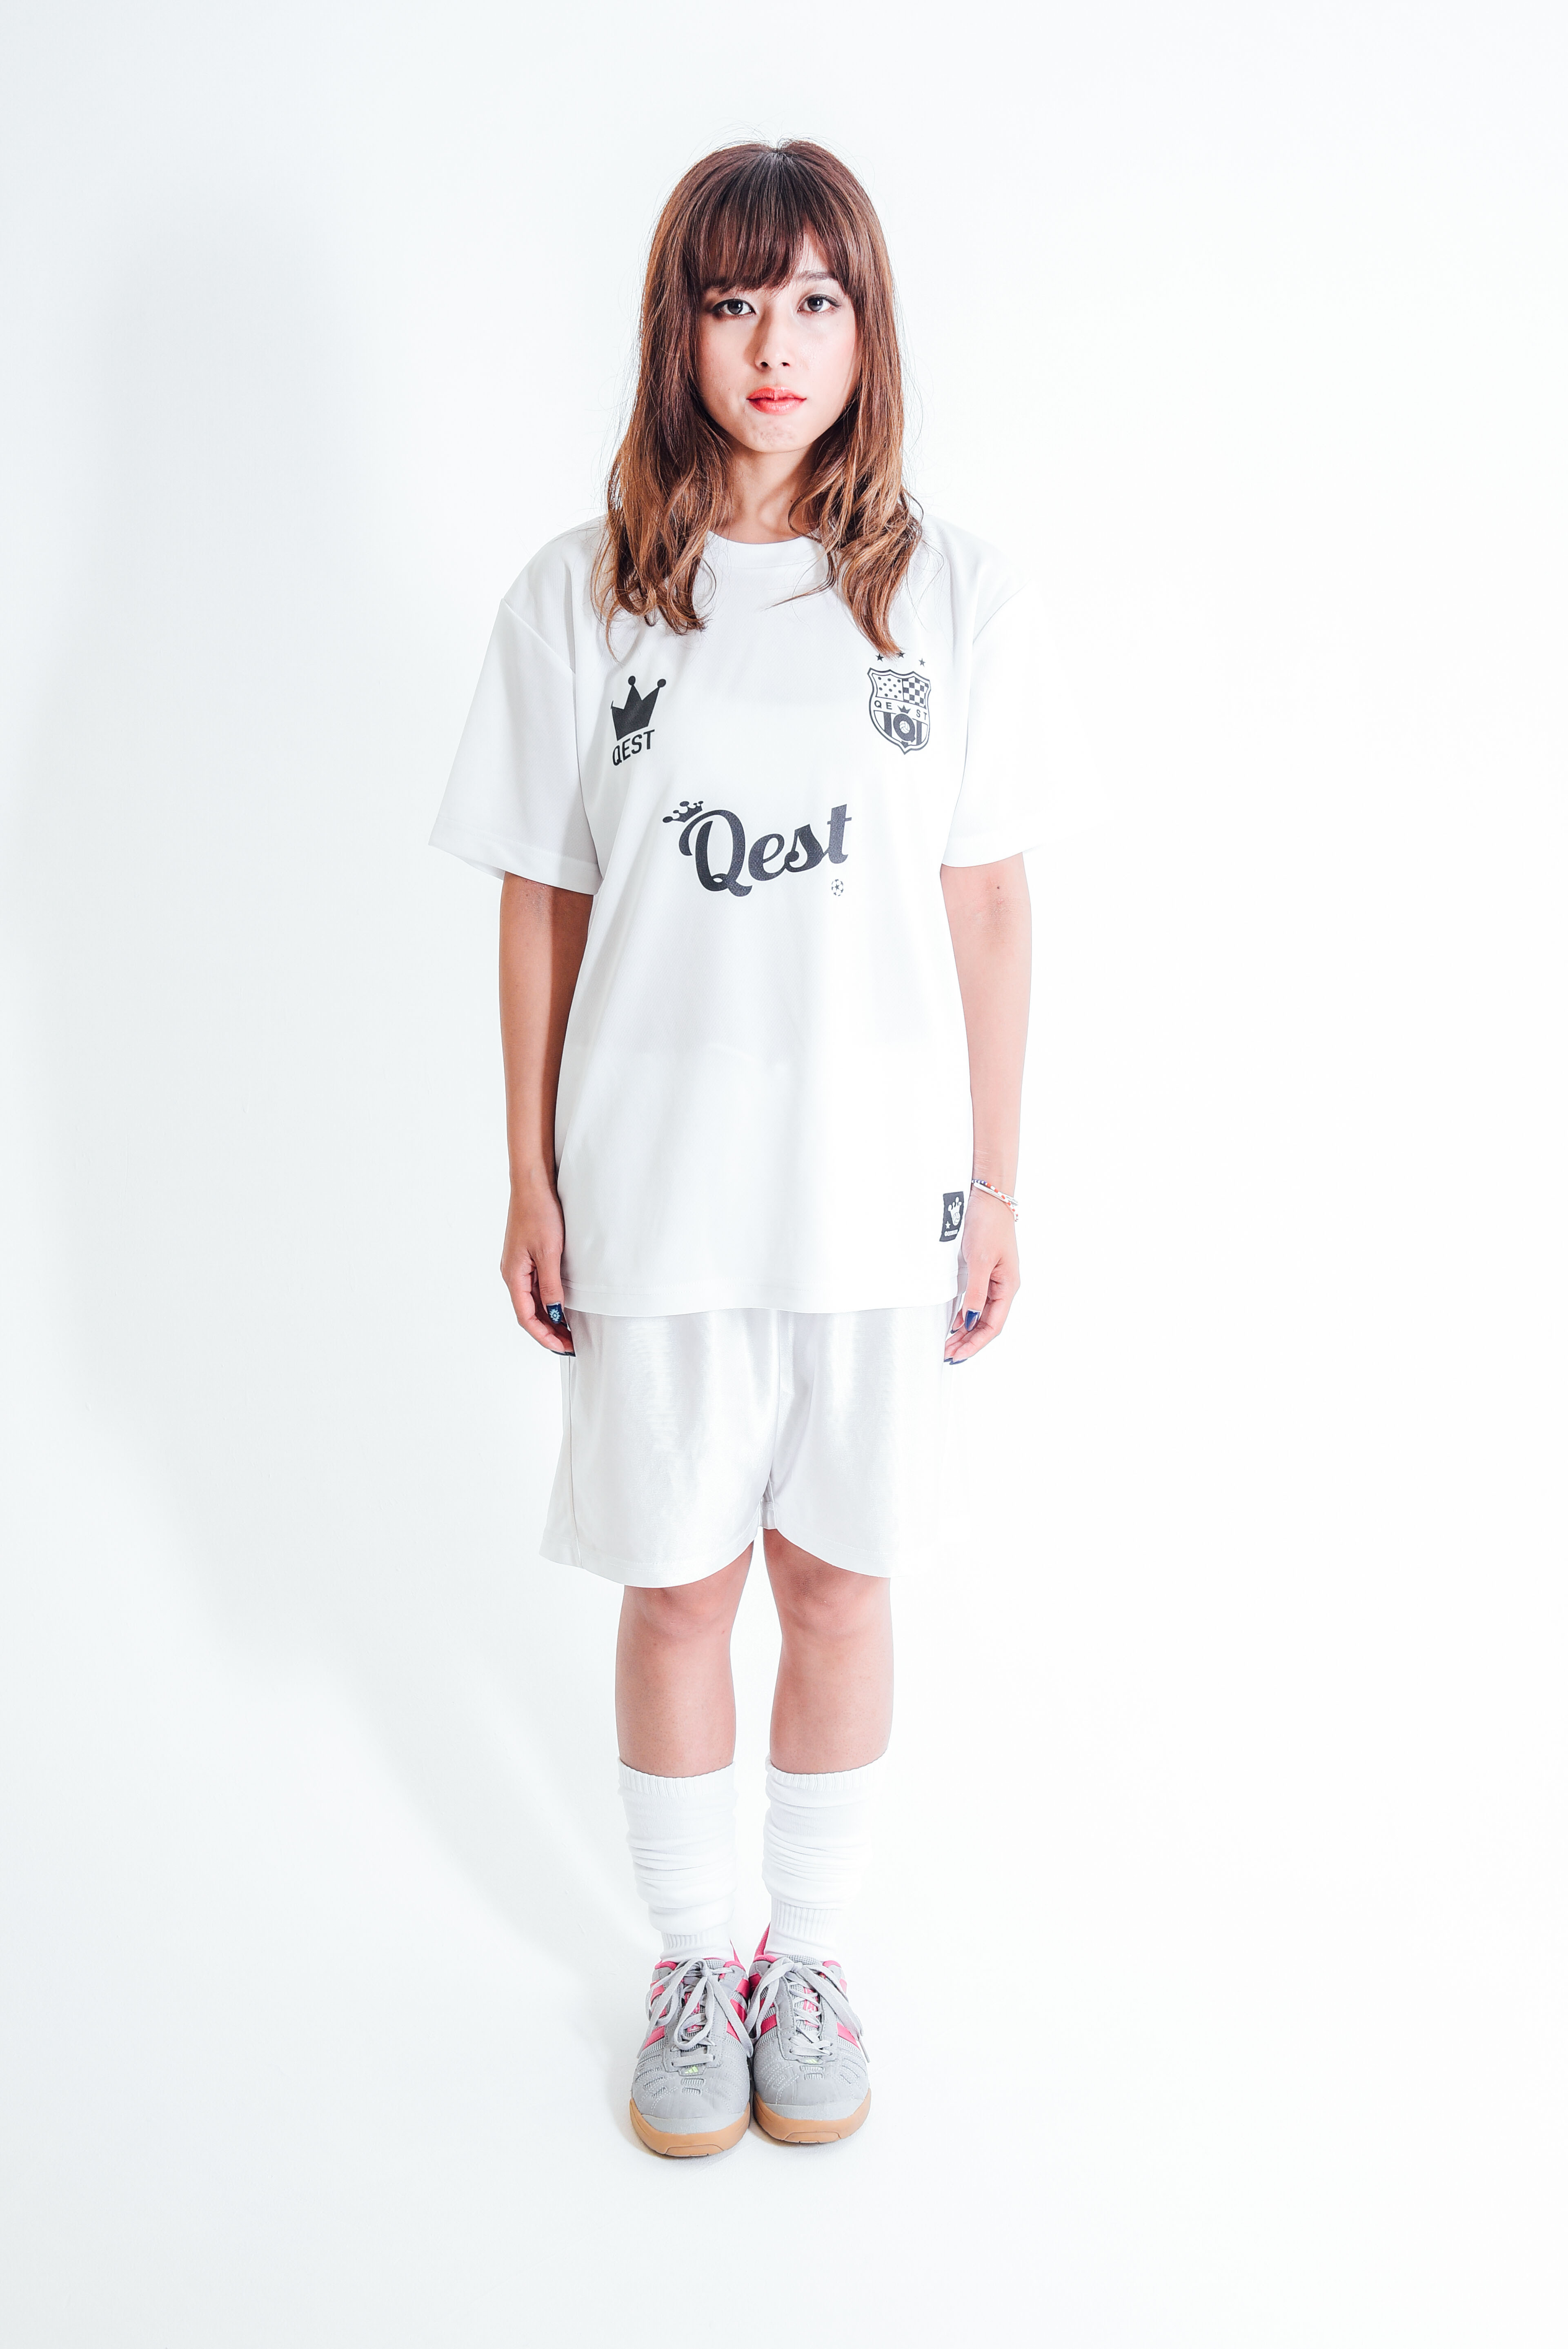 Qest Crown Practice Shirt / White - 画像4